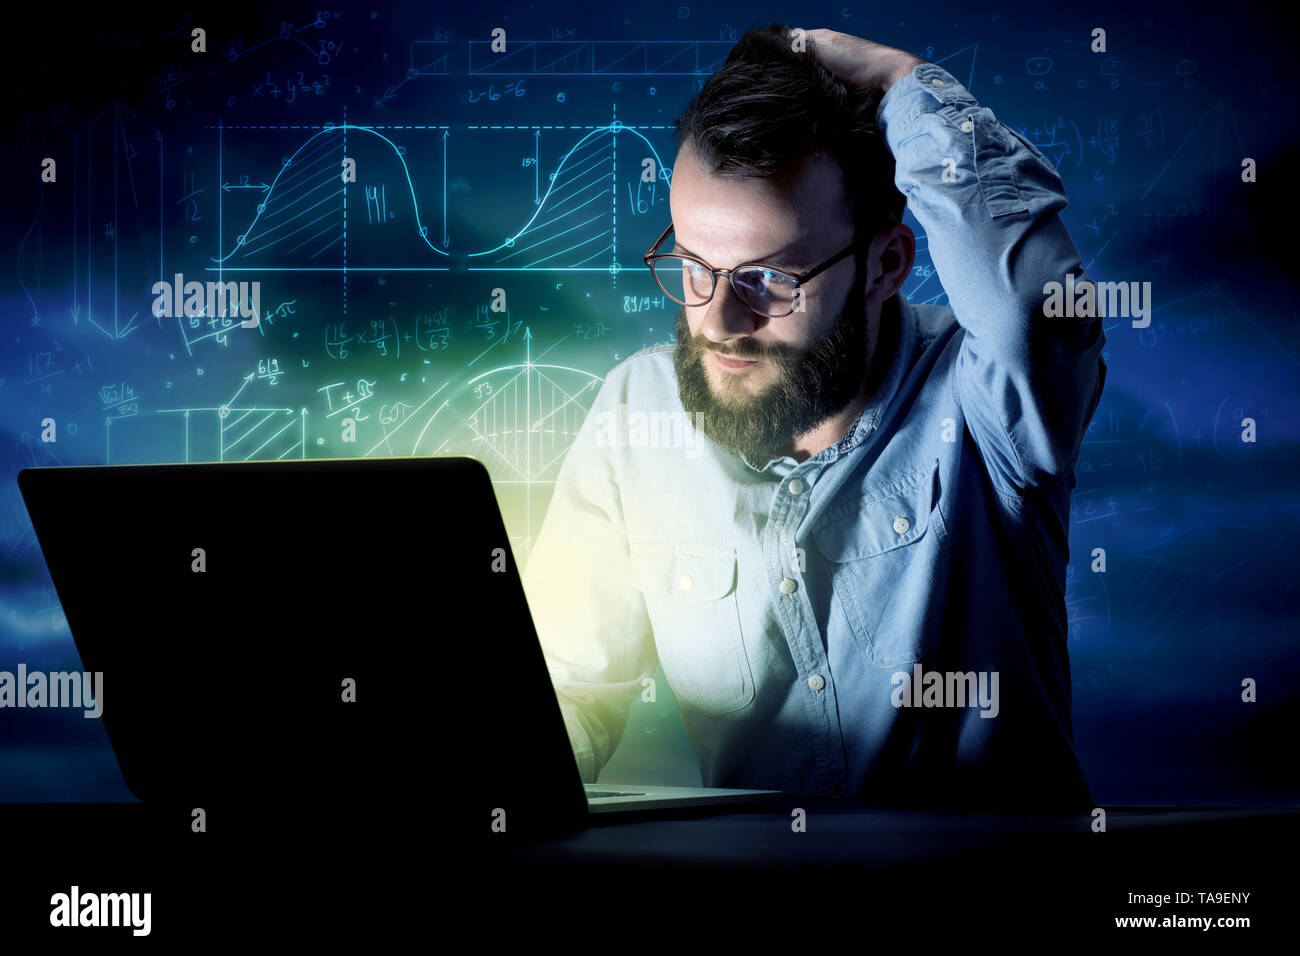 Young handsome businessman working late at night in the office with blue mathematic charts in the background - Stock Image